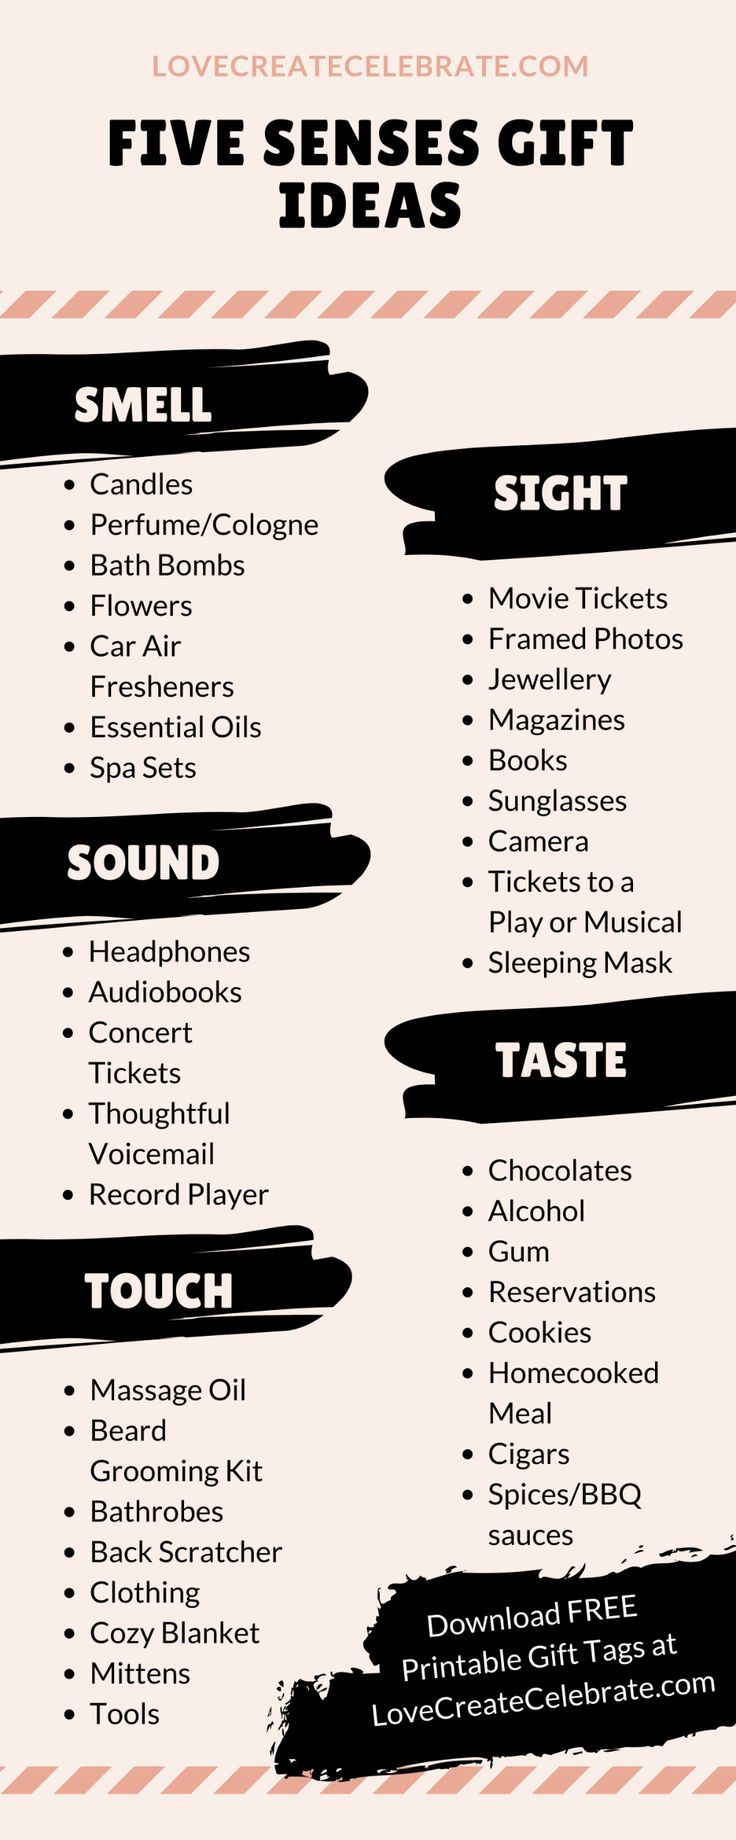 Gift ideas for your five senses gift! Ideas for your sense of smell, taste, touch, sight, and sound or hearing. Perfect for valentines day, a birthday, an anniversary, etc. Great ideas for creative five senses gifts for him or her.